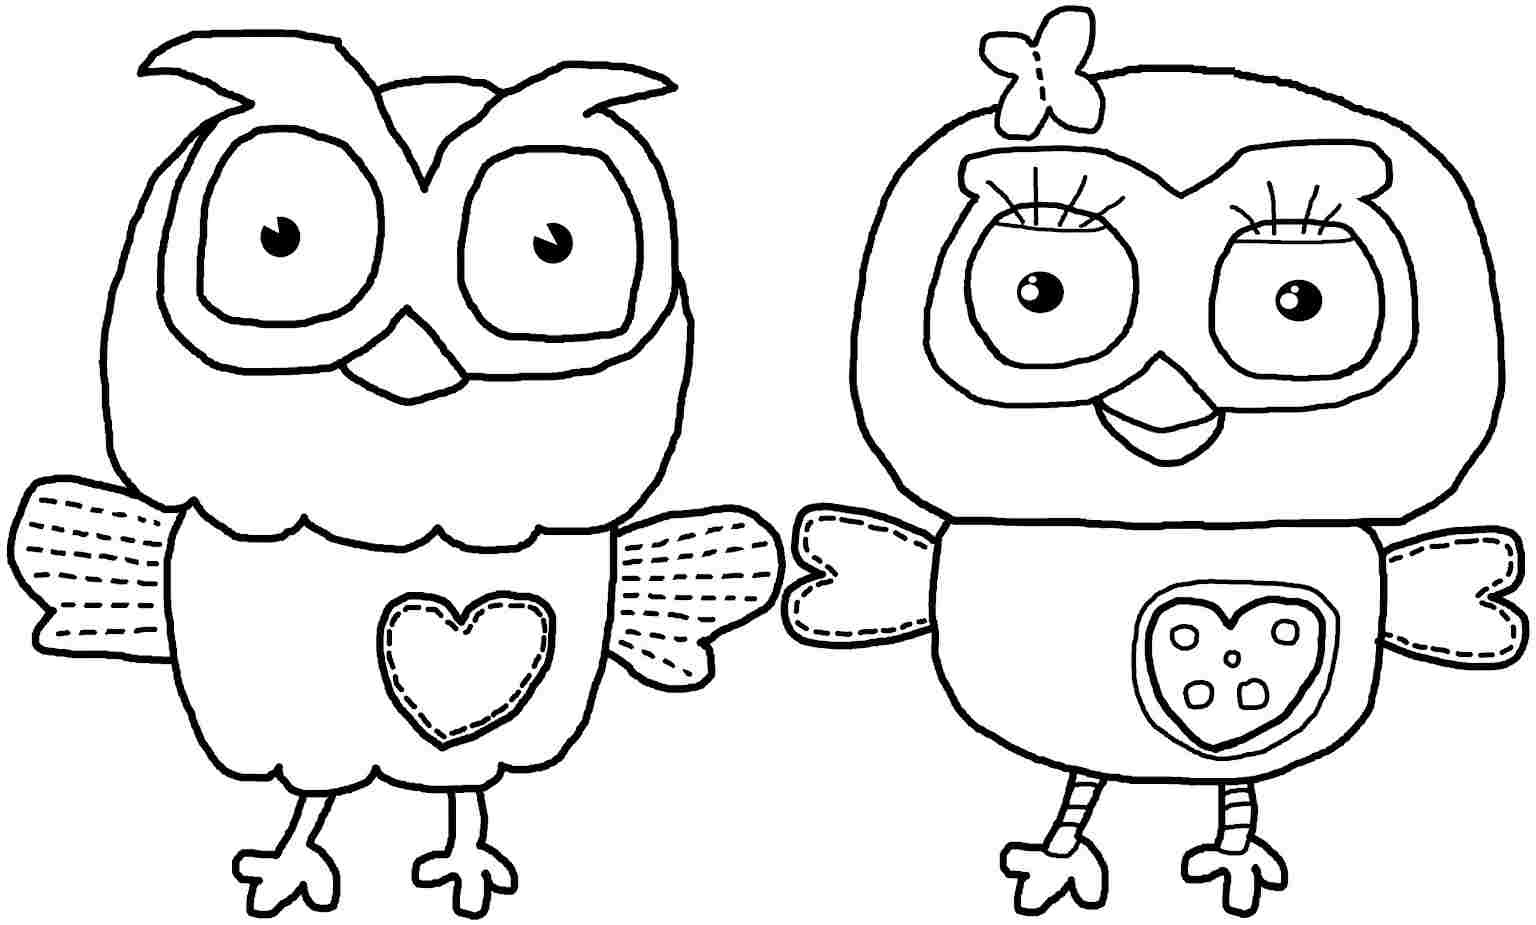 Colouring for adults benefits - Coloring Pages For Adults